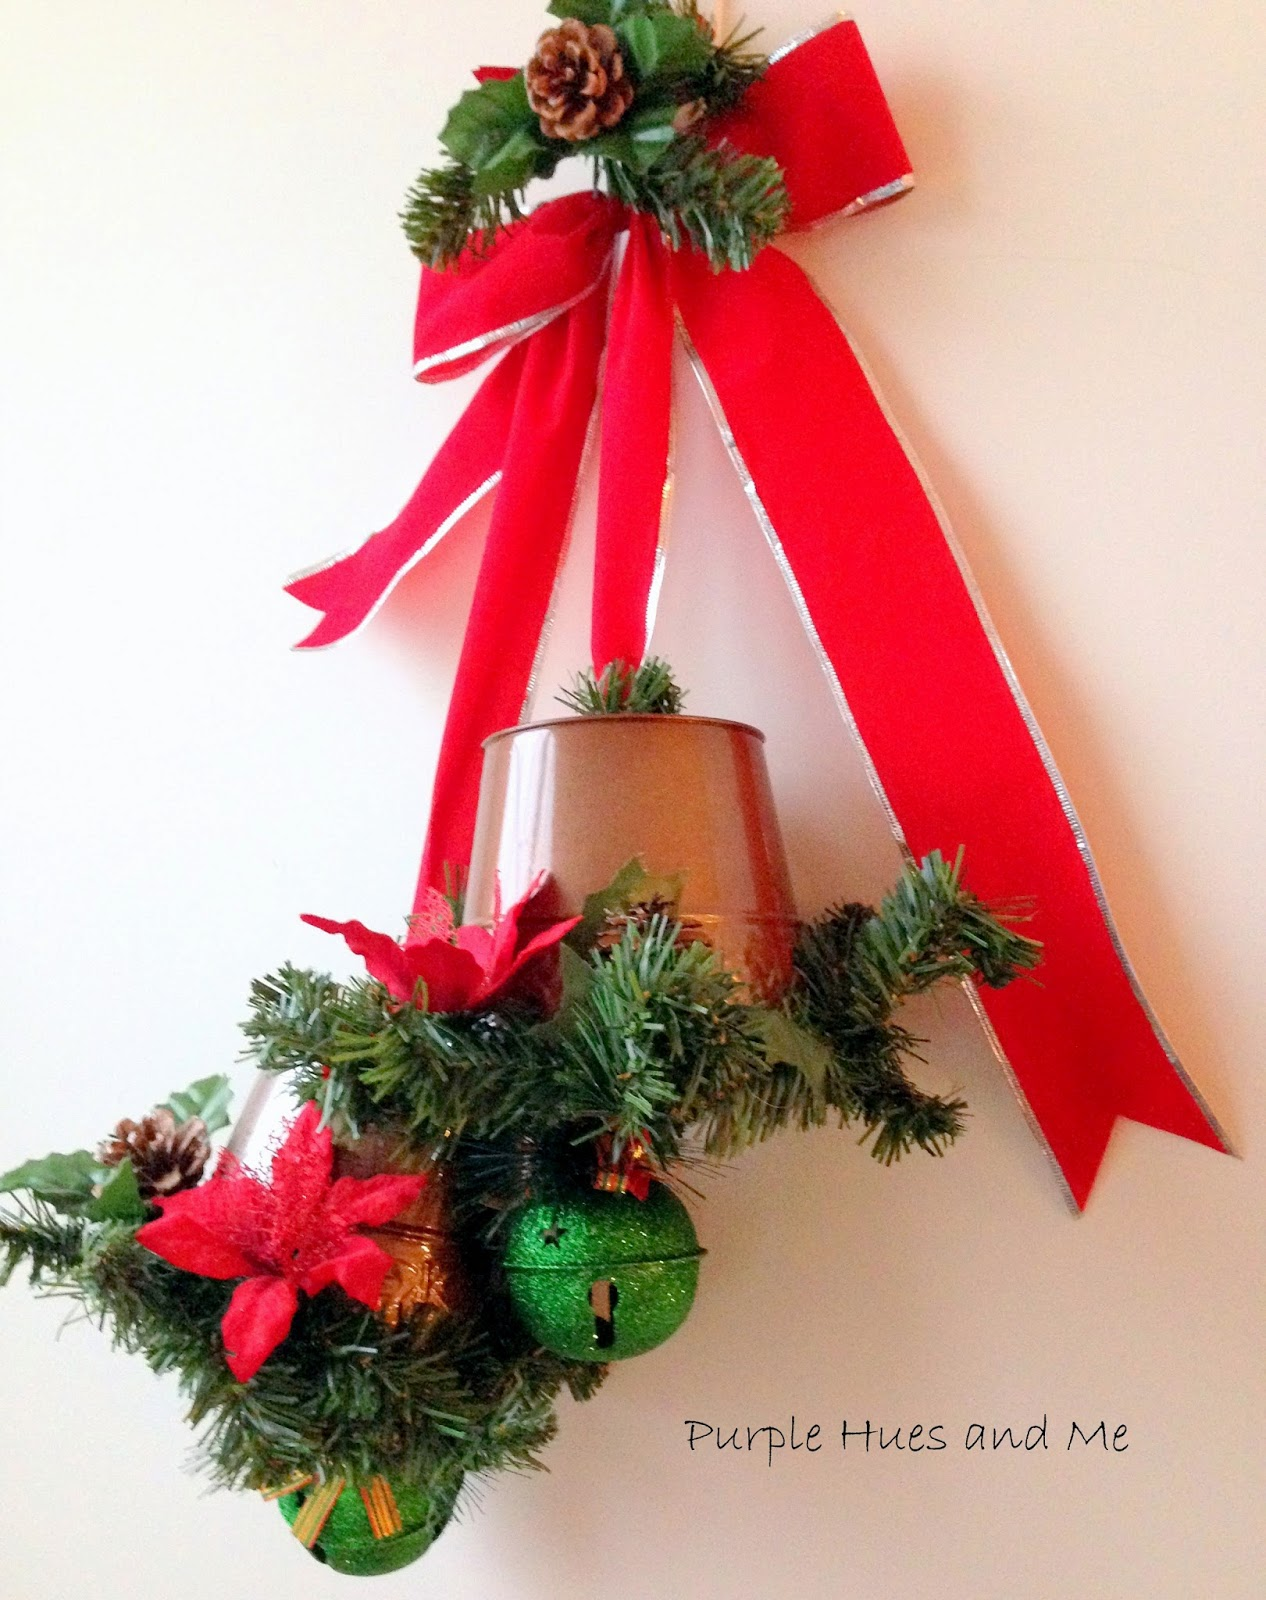 hows that for a quick way to make a decorative holiday wall hanging